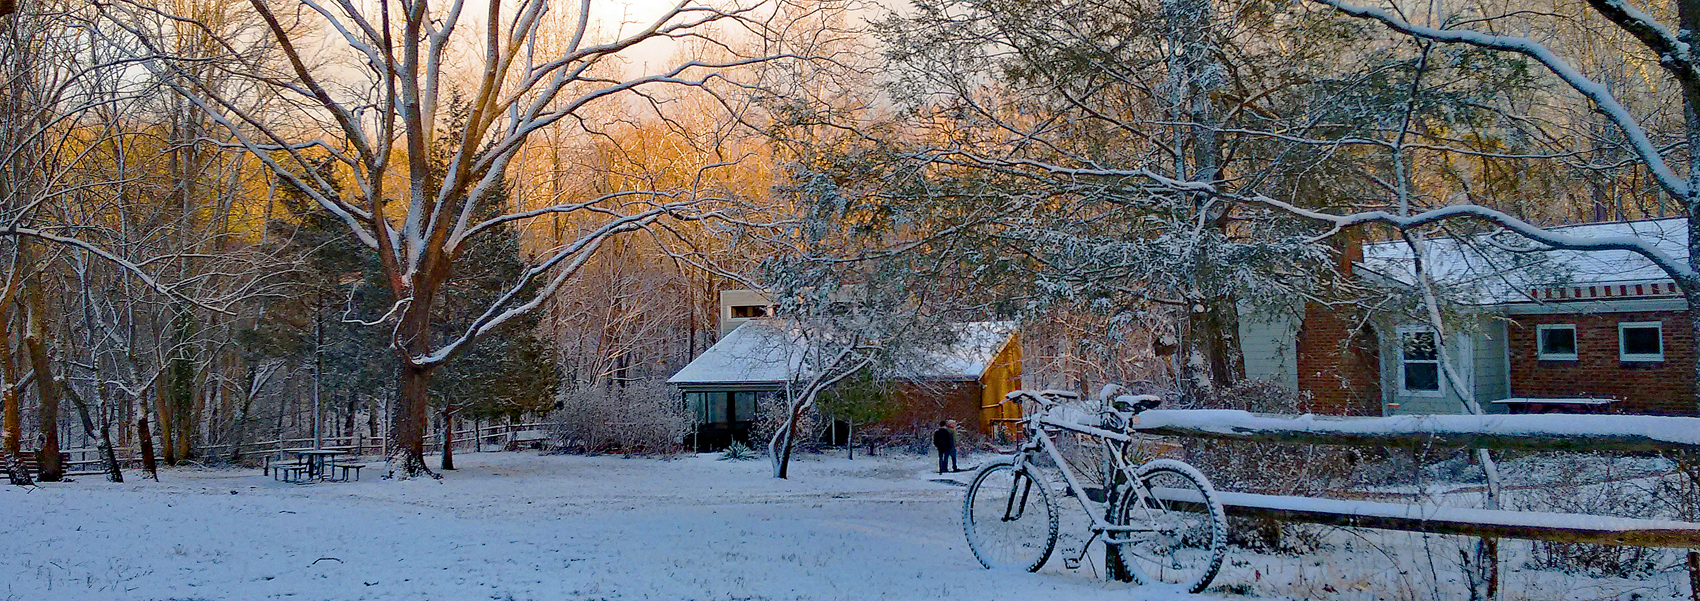 The Hidden Oaks Nature Center exterior in winter